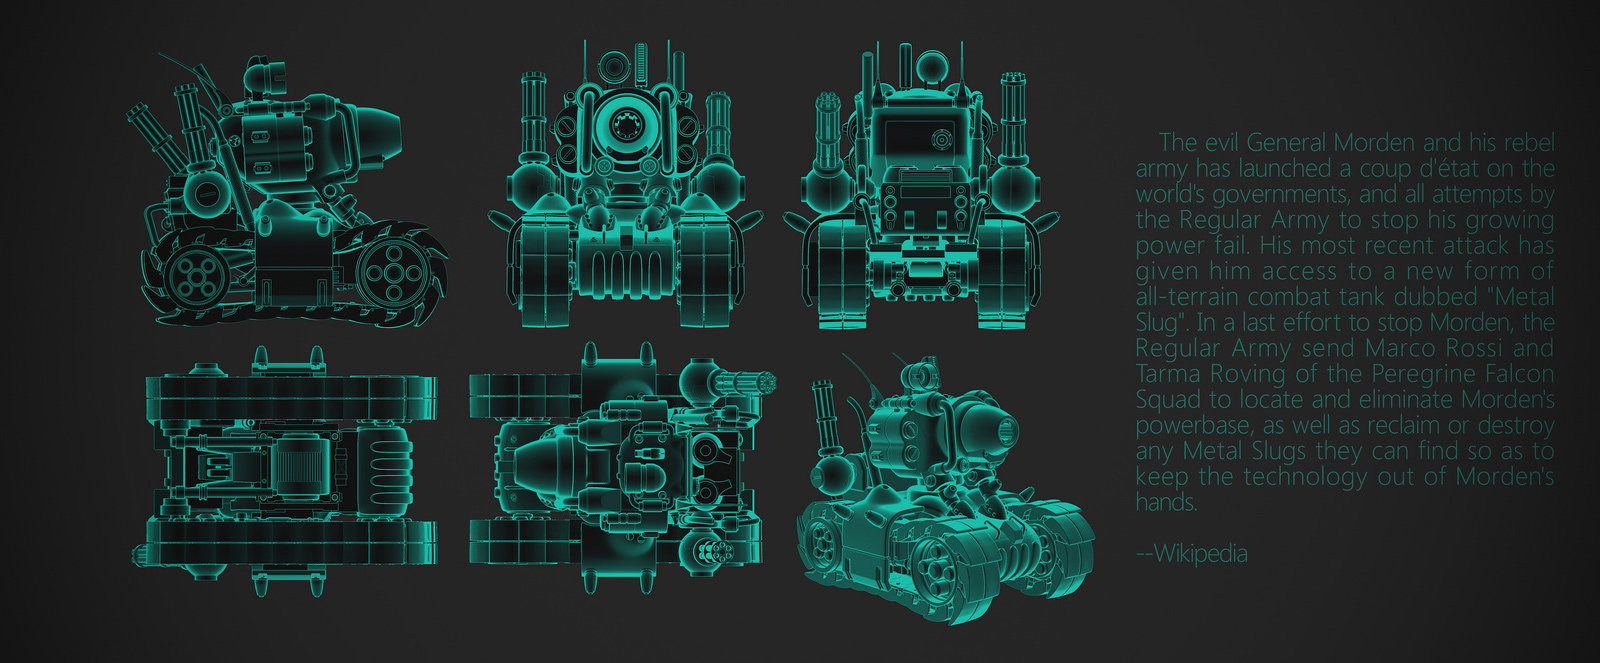 Zhelong xu metal slug3